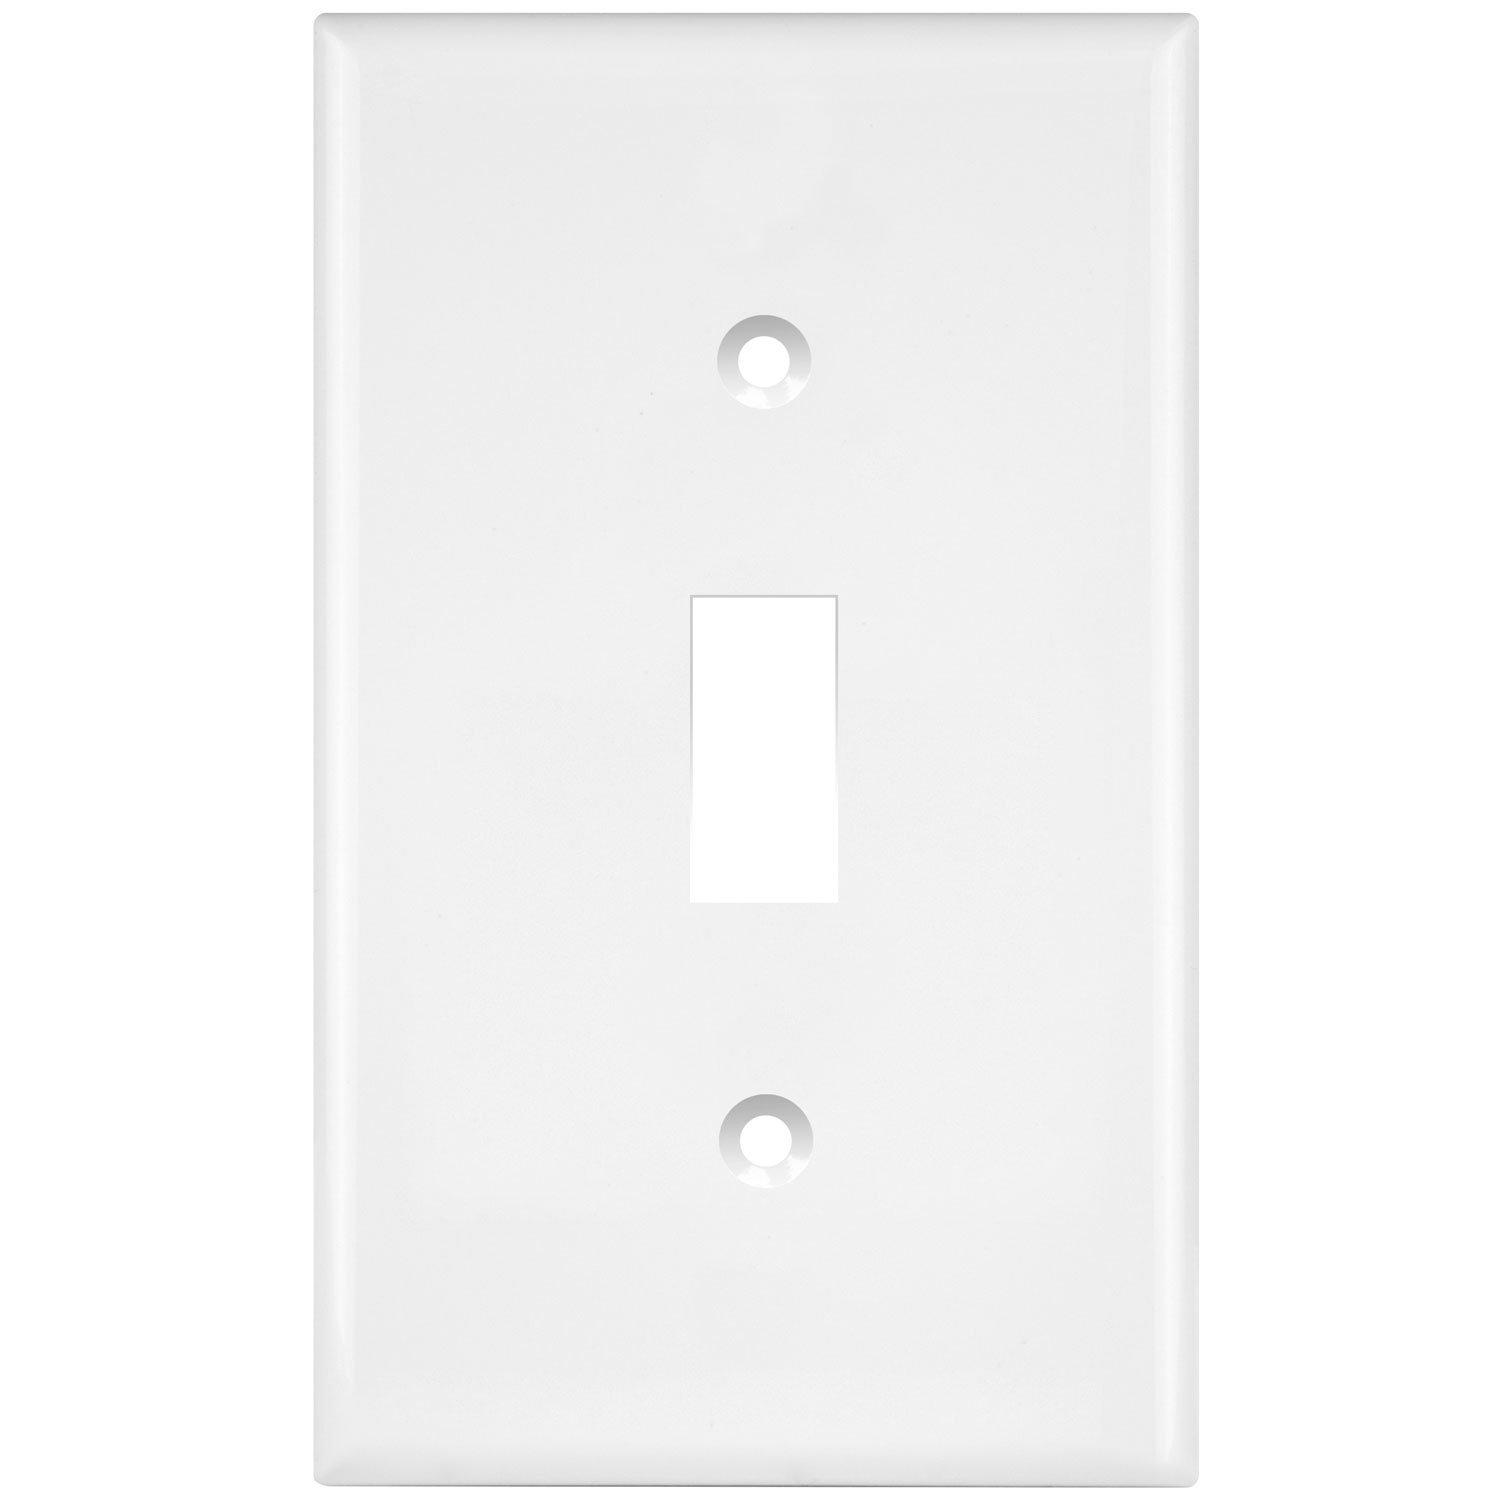 ENERLITES Toggle Light Switch Wall Plate, Size 1-Gang 4.50'' x 2.76'', Polycarbonate Thermoplastic, 8811-W, White